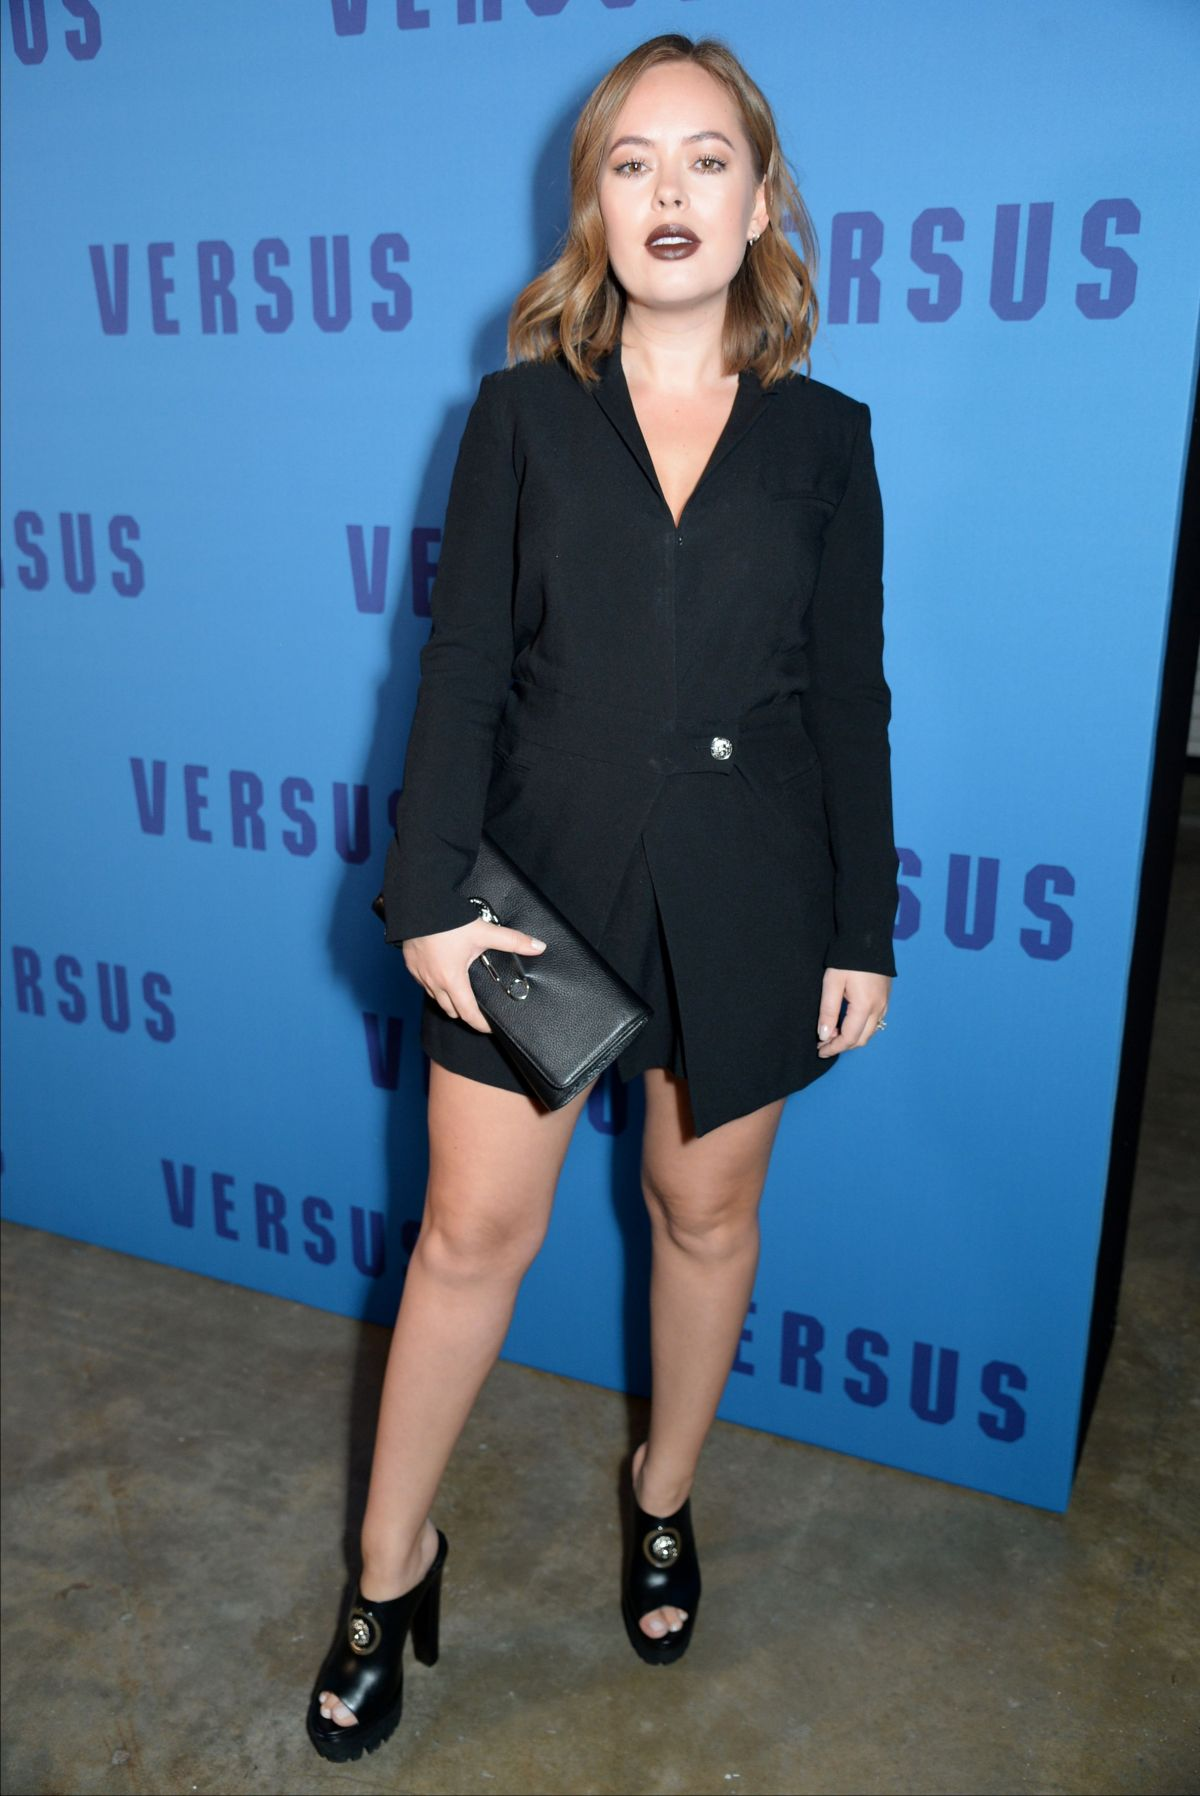 TANYA BURR at Versus Versace Fashion Show in London 02/18/2017